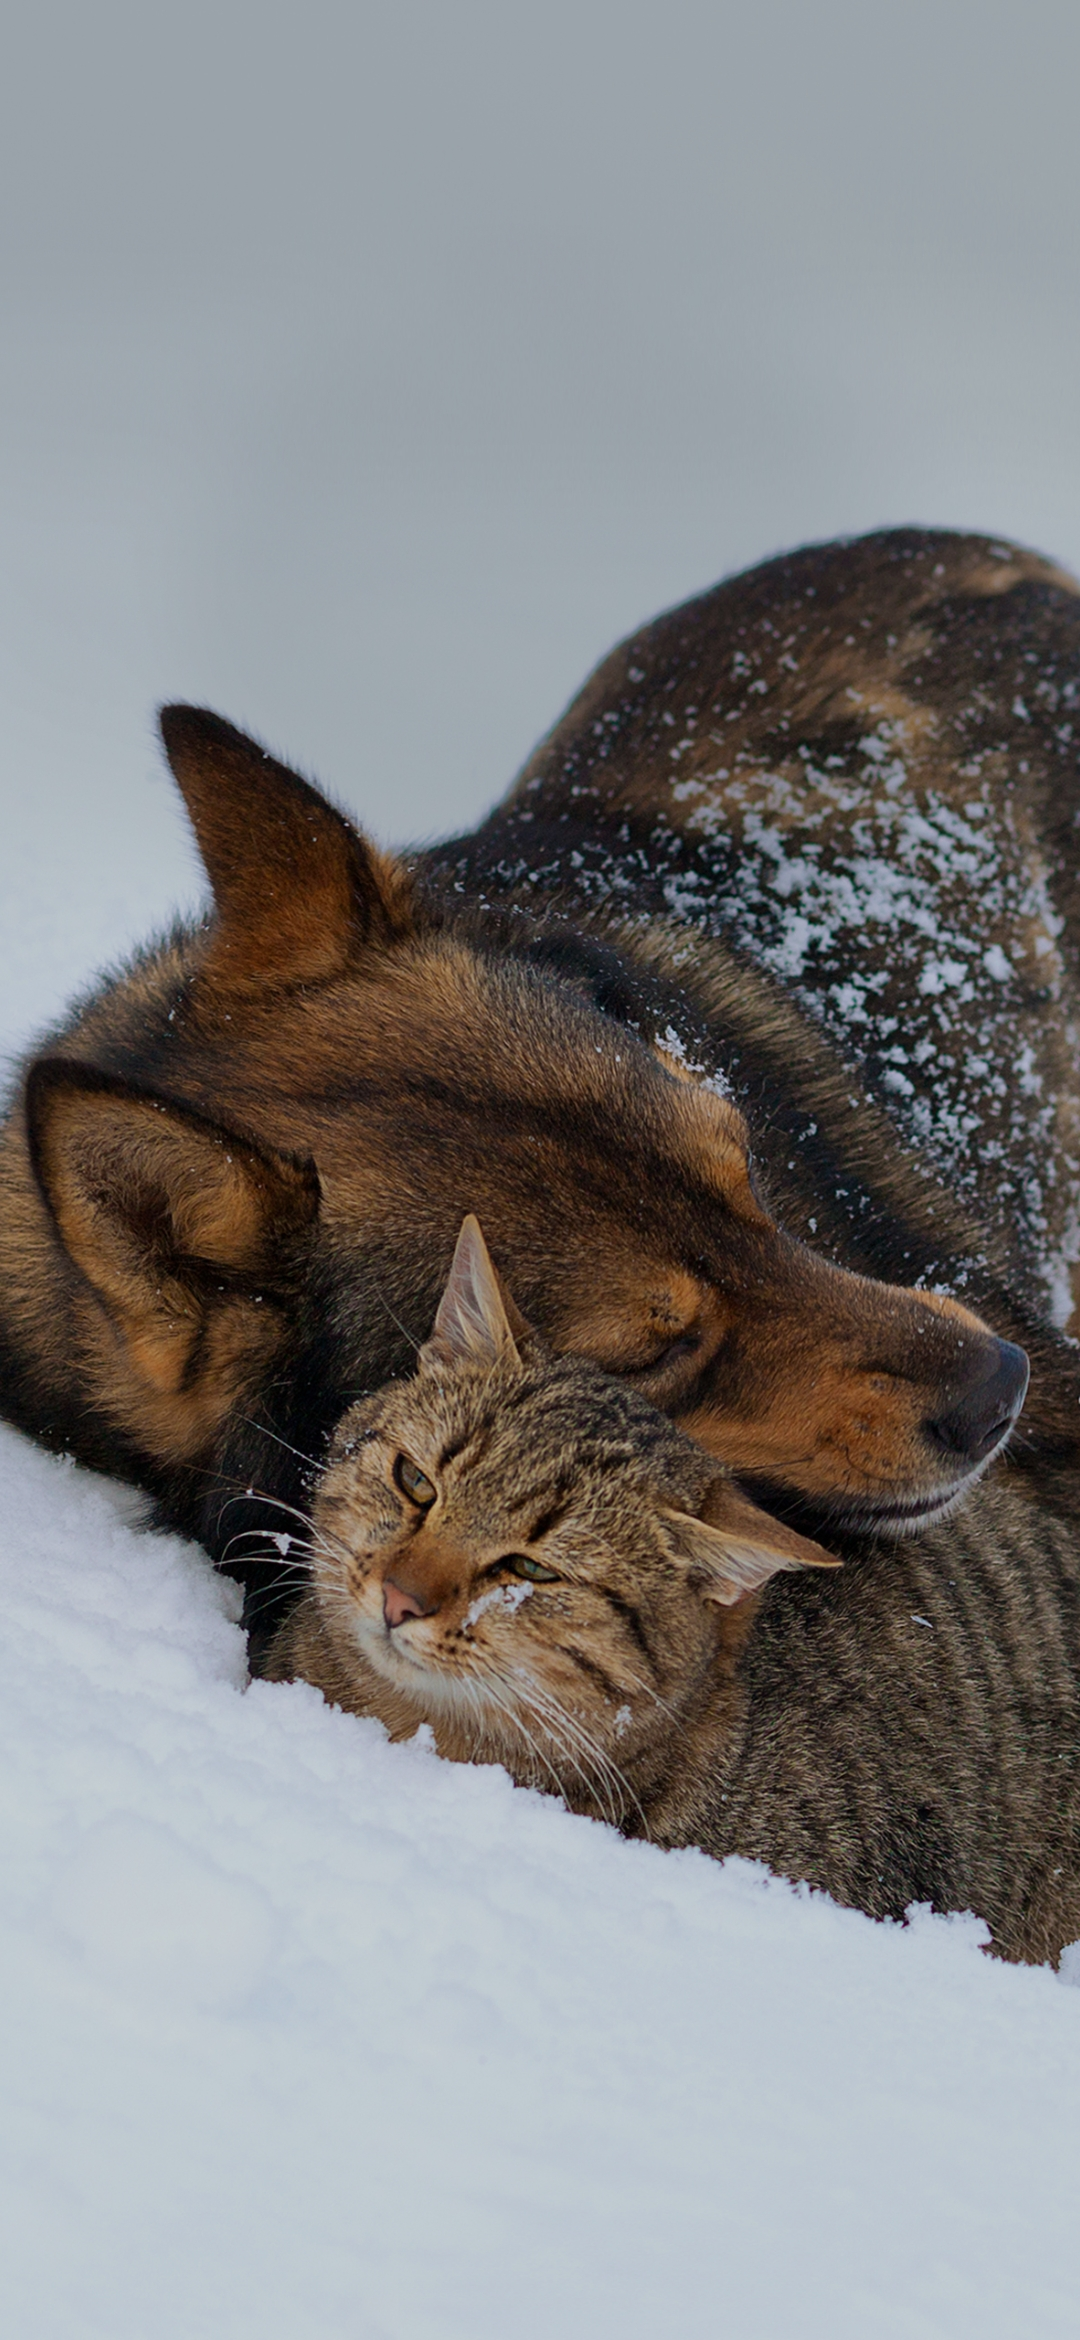 A dog and cat together